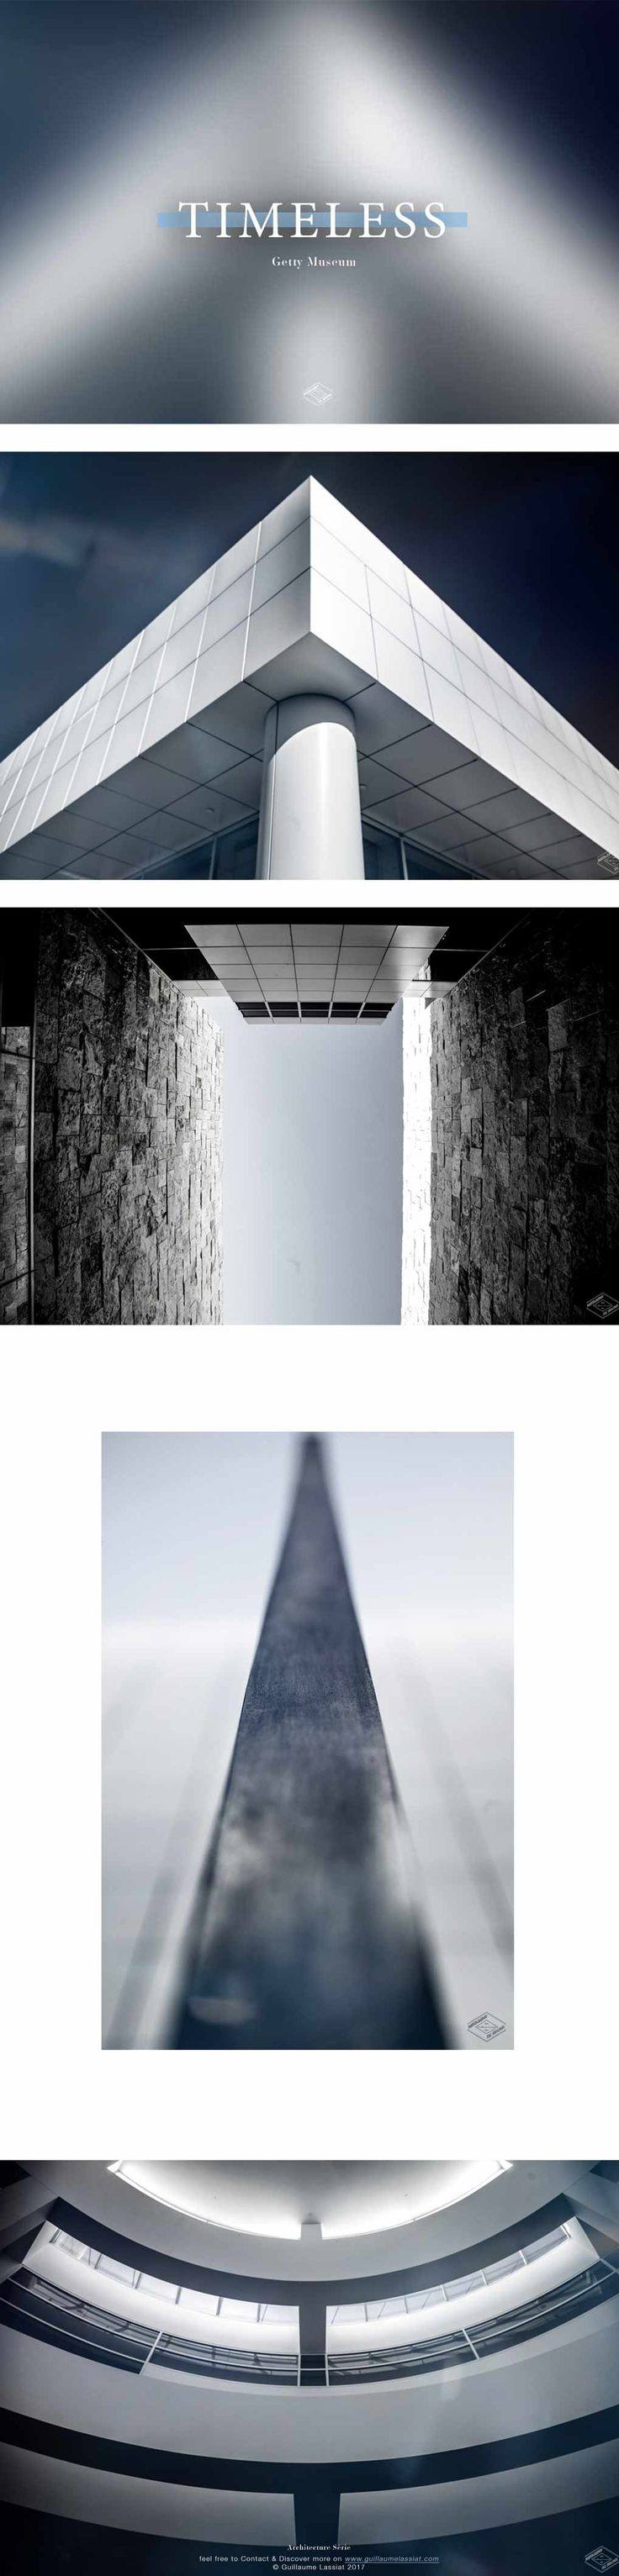 """""""Timeless"""" An Architecture serie at the Getty Museum in Los Angeles, California.  An amazing spot to discover! Feel free to contact & discover more on www.guillaumelassiat.com © Guillaume Lassiat 2017"""